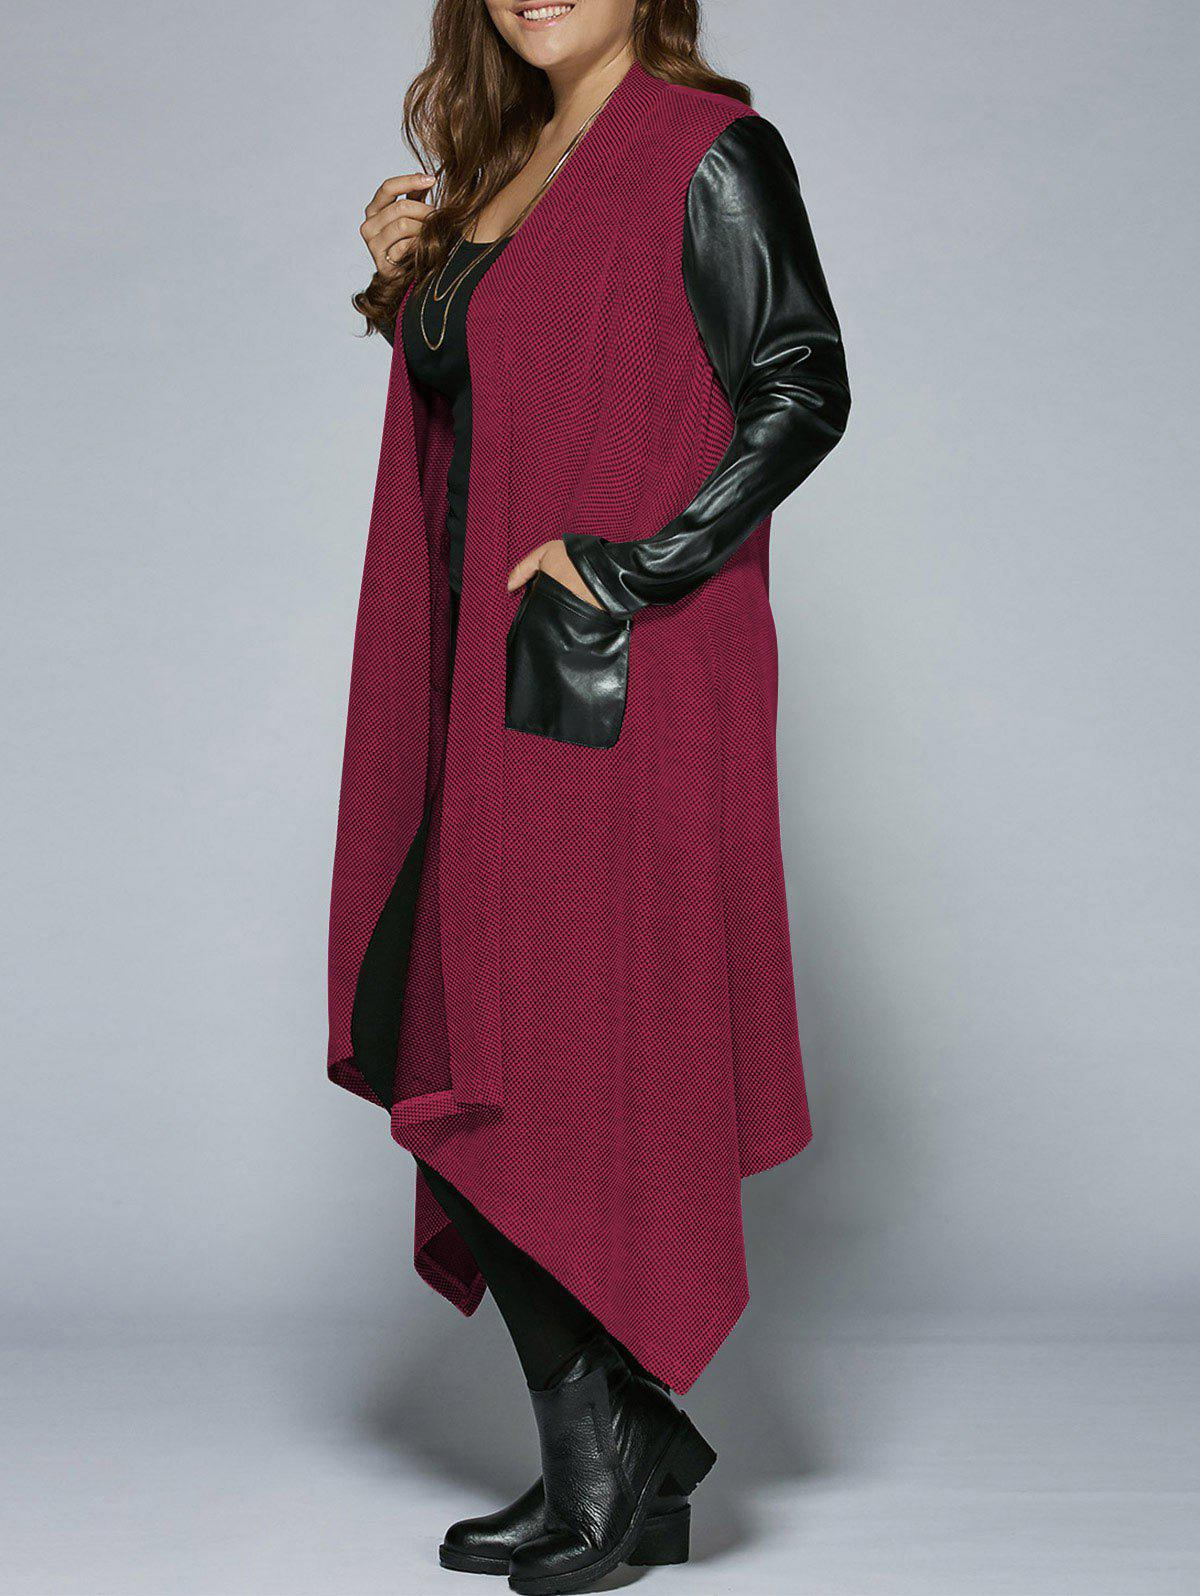 Plus Size PU Leather Trim Longline Asymmetrical CoatWOMEN<br><br>Size: 3XL; Color: RED; Clothes Type: Trench; Material: Rayon; Type: Asymmetric Length; Shirt Length: Long; Sleeve Length: Full; Collar: Collarless; Pattern Type: Solid; Embellishment: Pockets; Style: Fashion; Season: Fall,Spring; Weight: 0.5160kg; Package Contents: 1 x Coat;